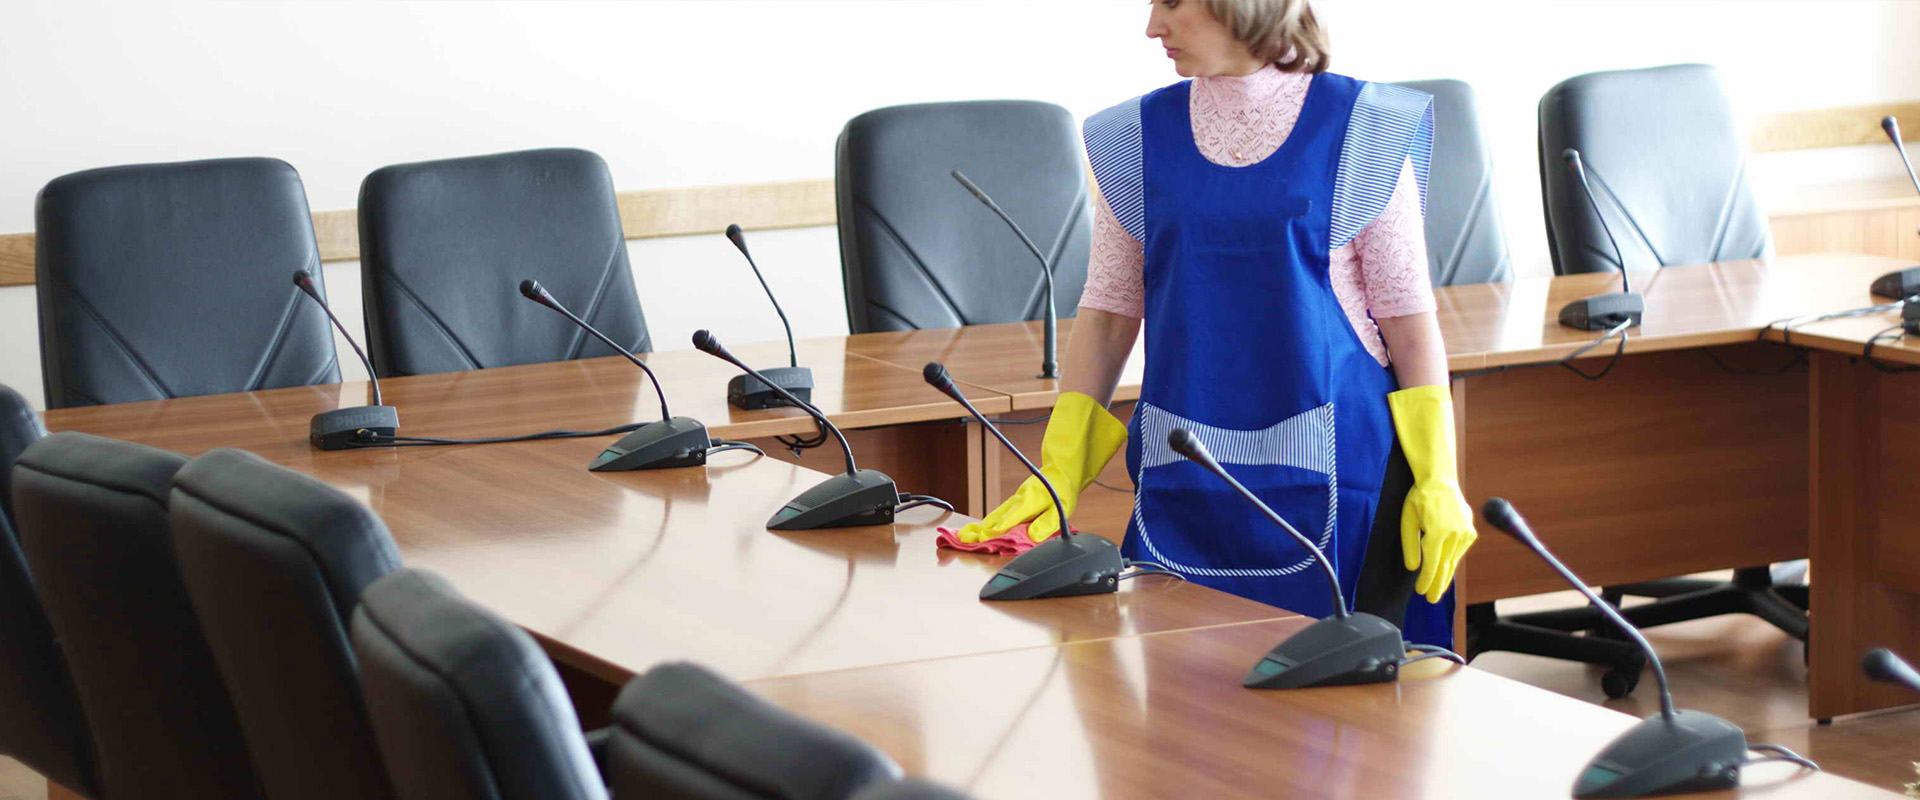 Commercial office cleaning.